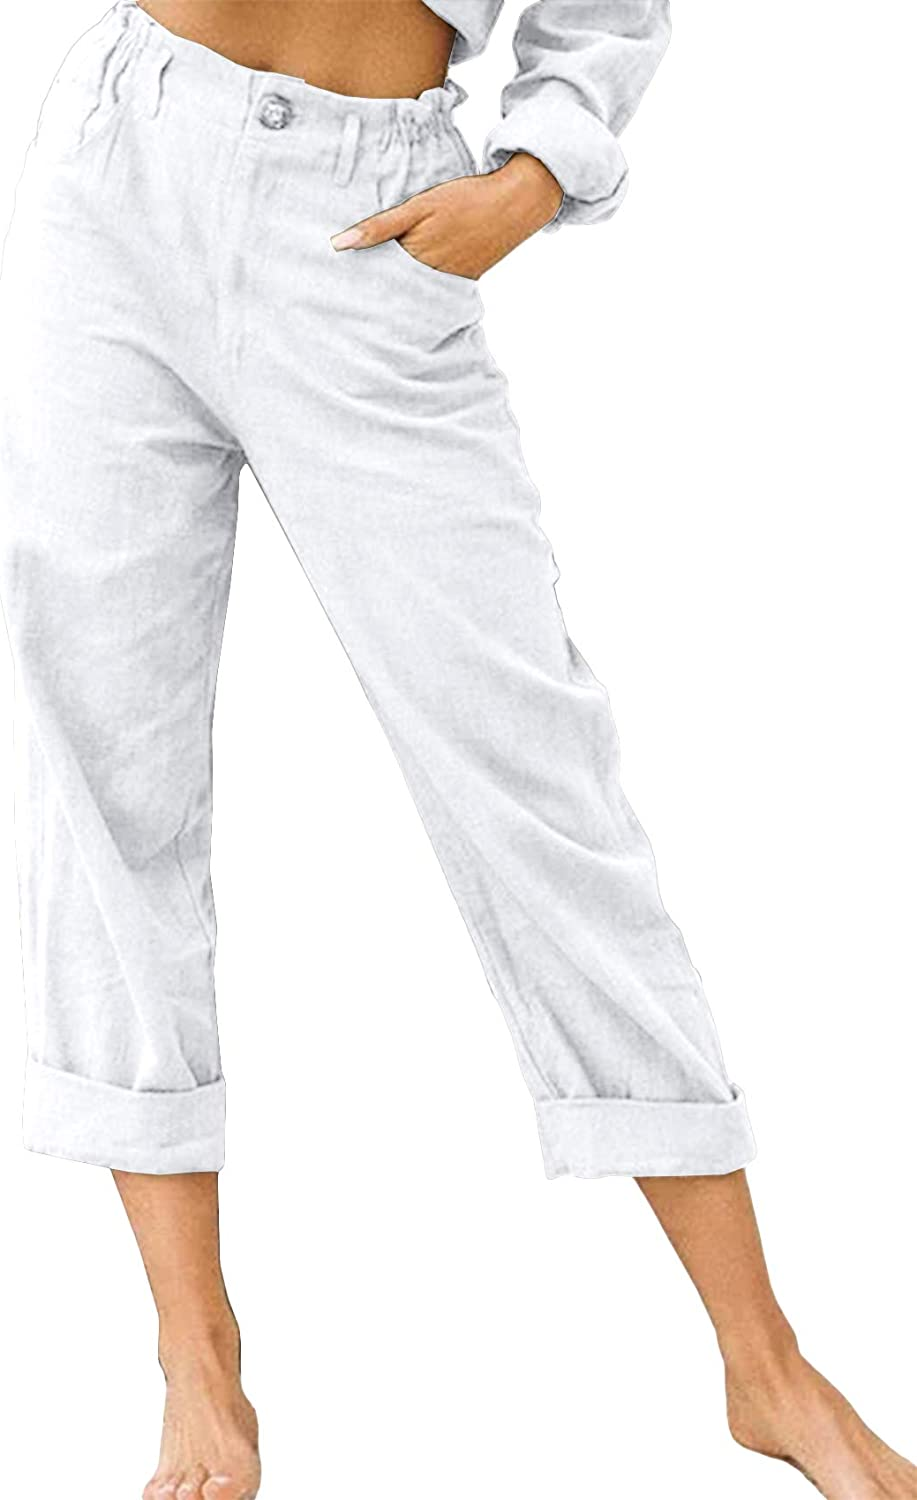 Runcati Womens Linen Cotton Pants Casual Baggy Loose Fit Beach Lounge Trousers Long Pants with Pockets